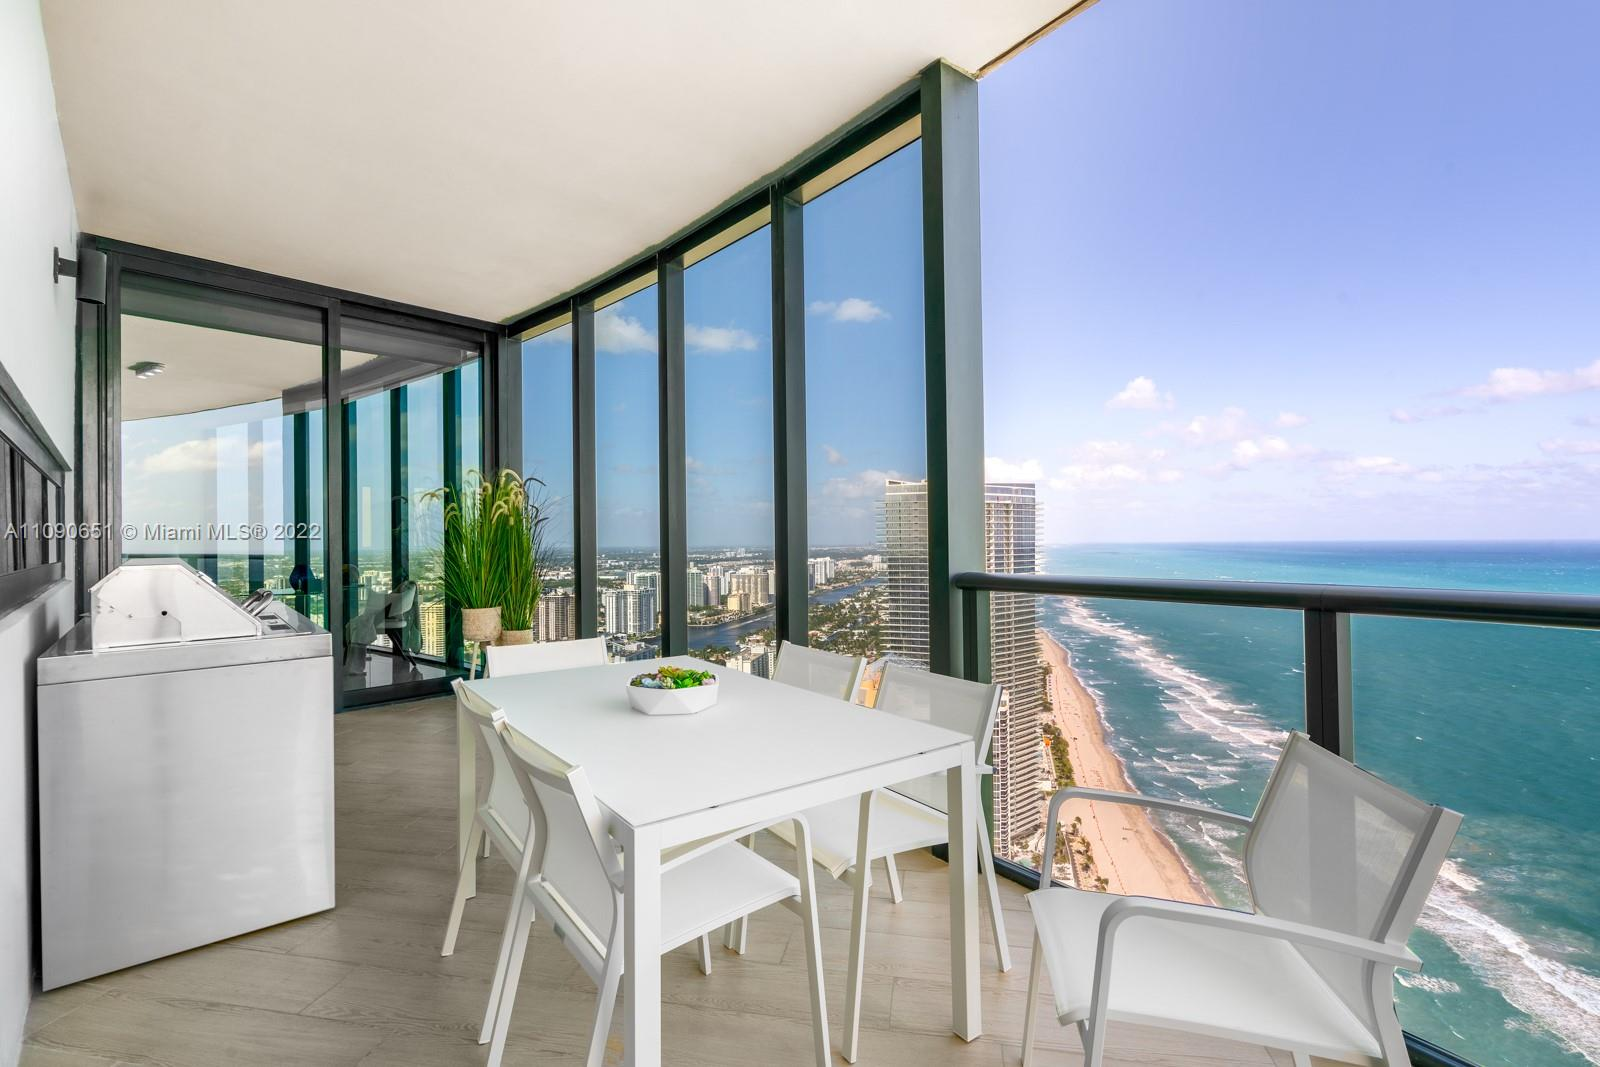 BEST UNOBSTRUCTED OCEAN VIEWS in the entire building! The only building you can drive your car into your apartment with a 2 car sky garage. Soaring 51 stories, this 4 bedroom mansion in the sky comes completely finished with marble floors, automatic blinds, smart home system, high end closet finishes, marble bathrooms, TOTO smart toilets, service room with brand new washer and dryer and service bathroom, a summer kitchen, pool on the balcony, 2 car garage in the unit, Poggenpohl kitchen with marble countertop and Miele appliances, a large dining area, and unparalleled panoramic views from every single room. Don't lose the opportunity to own the best placed residence in the most private, exclusive, and luxurious building Miami has to offer.